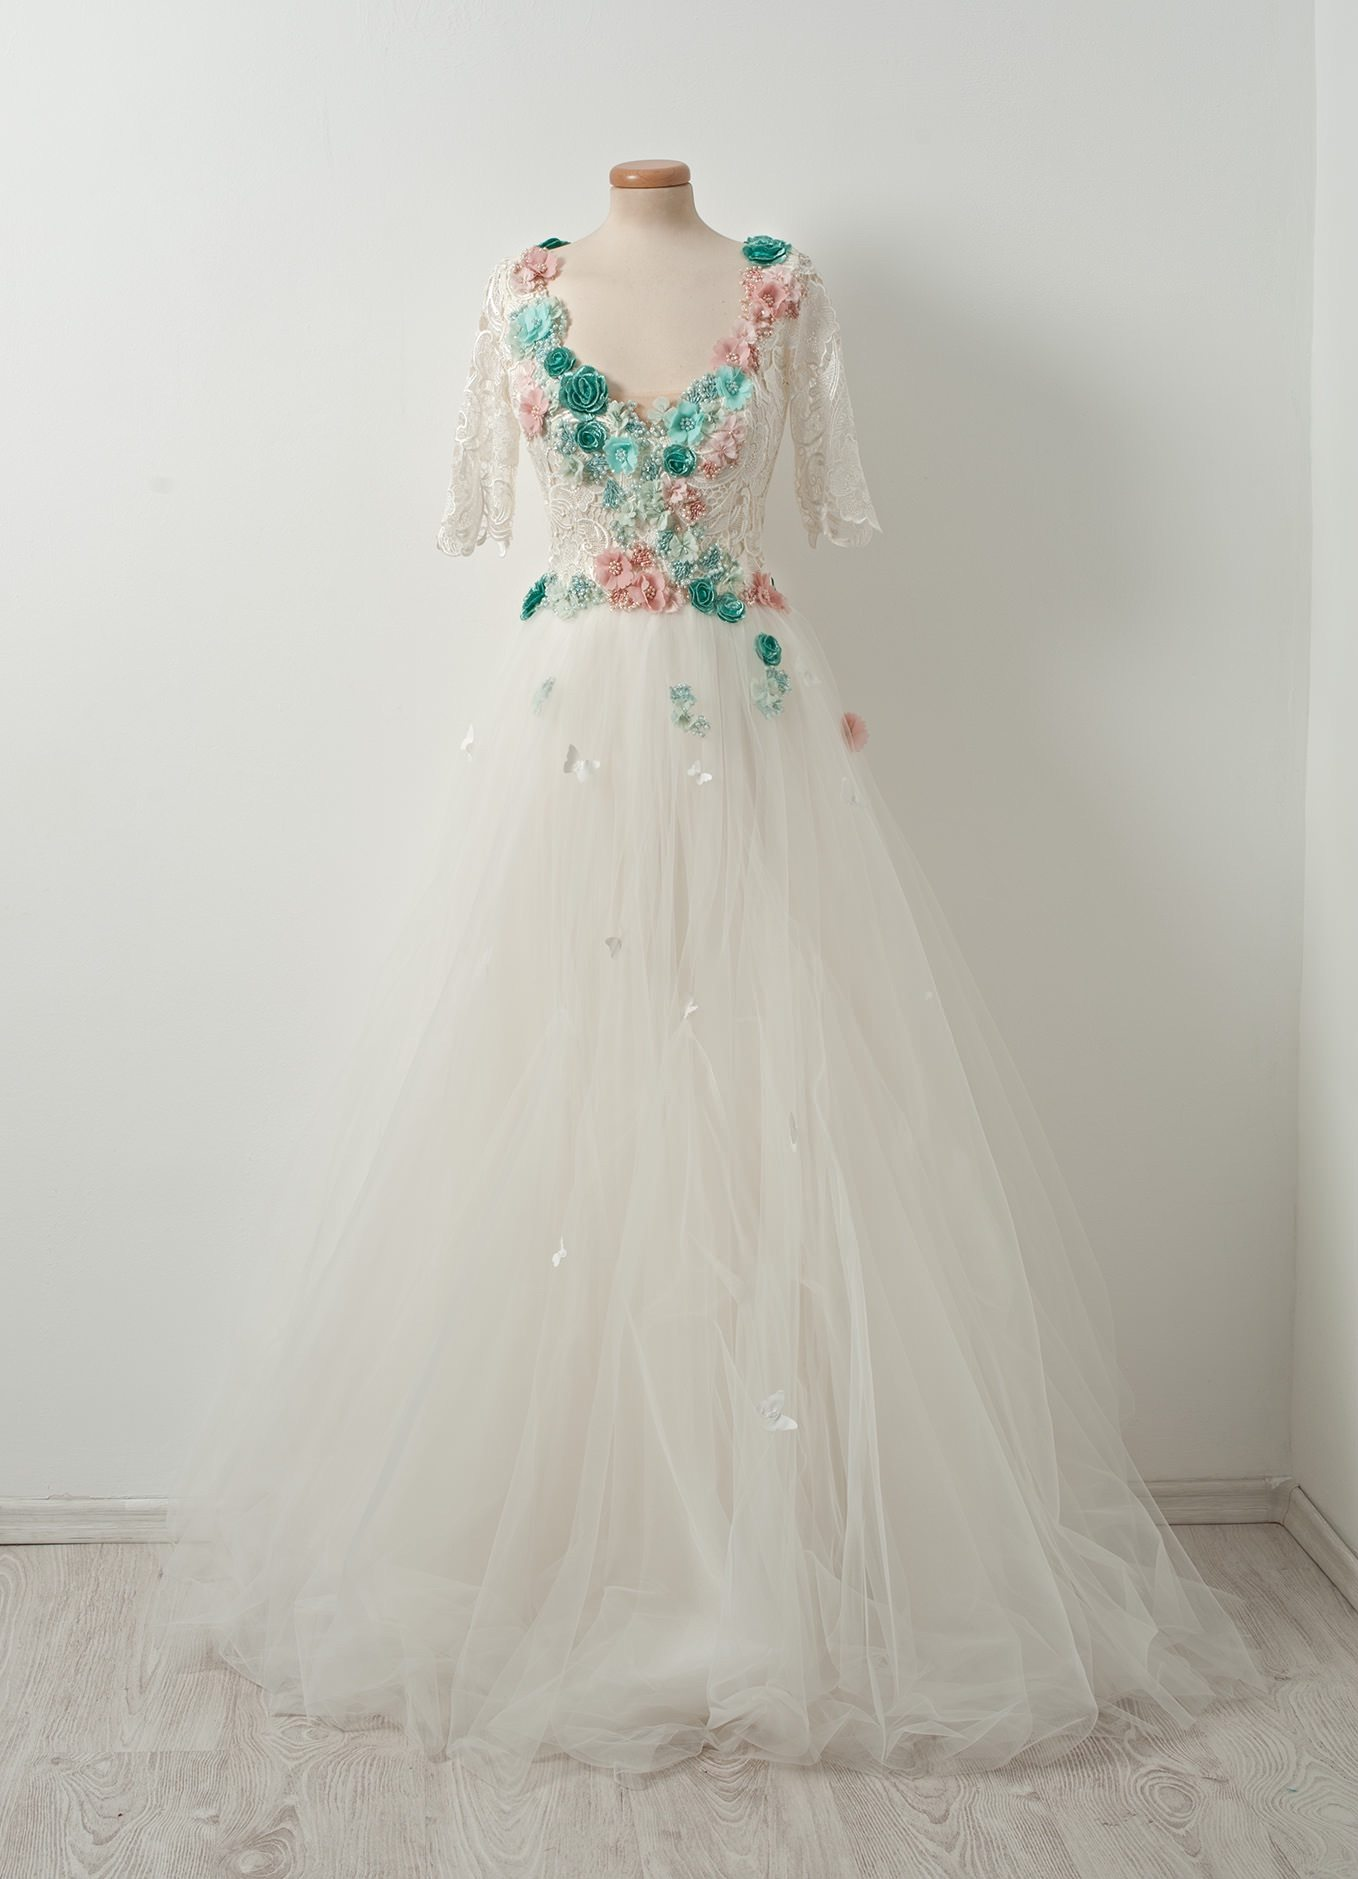 teal and pink lace Chotronette's French Macaroon dress